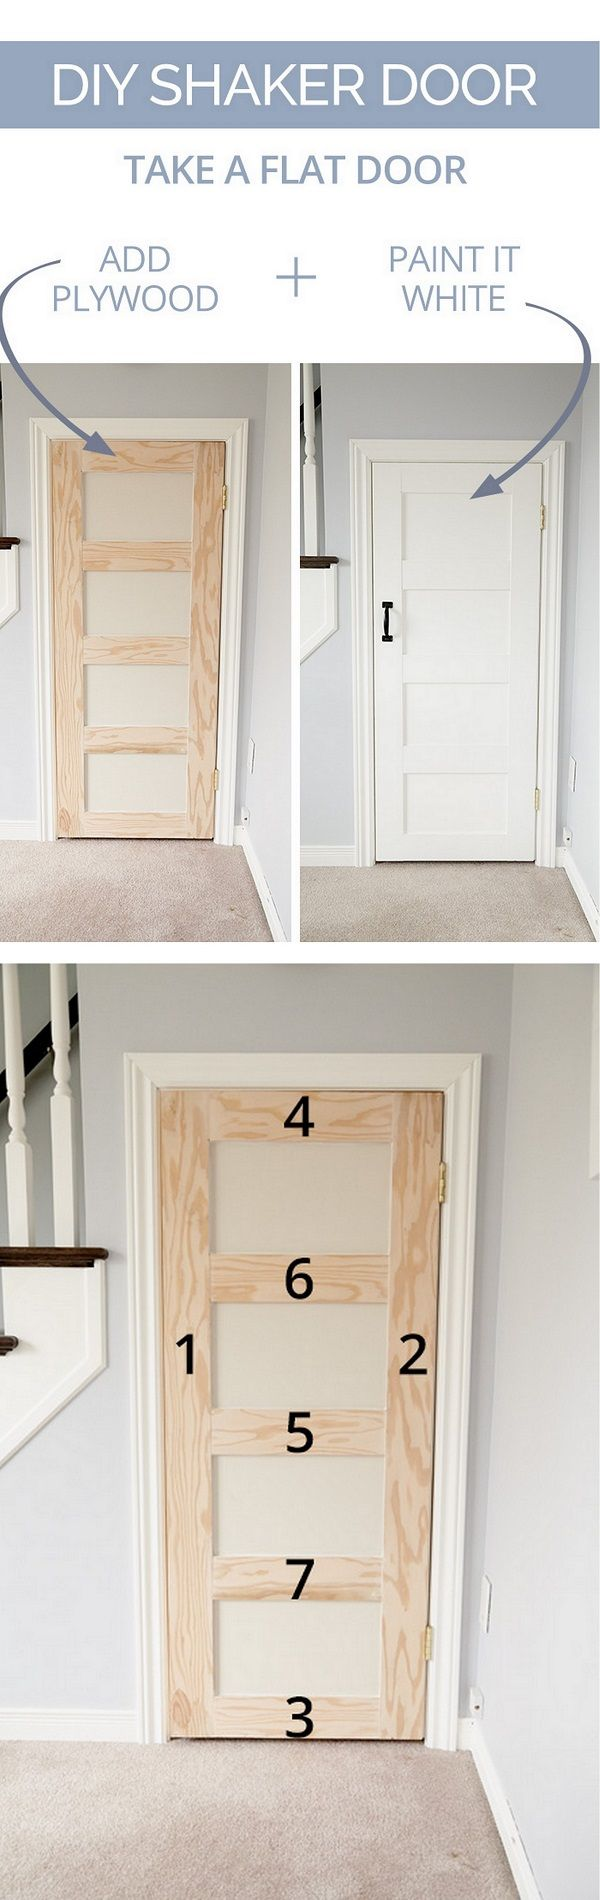 16 Easy Diy Door Projects For Amazing Decor On A Budget Home Remodeling Diy Diy Door Diy Projects On A Budget